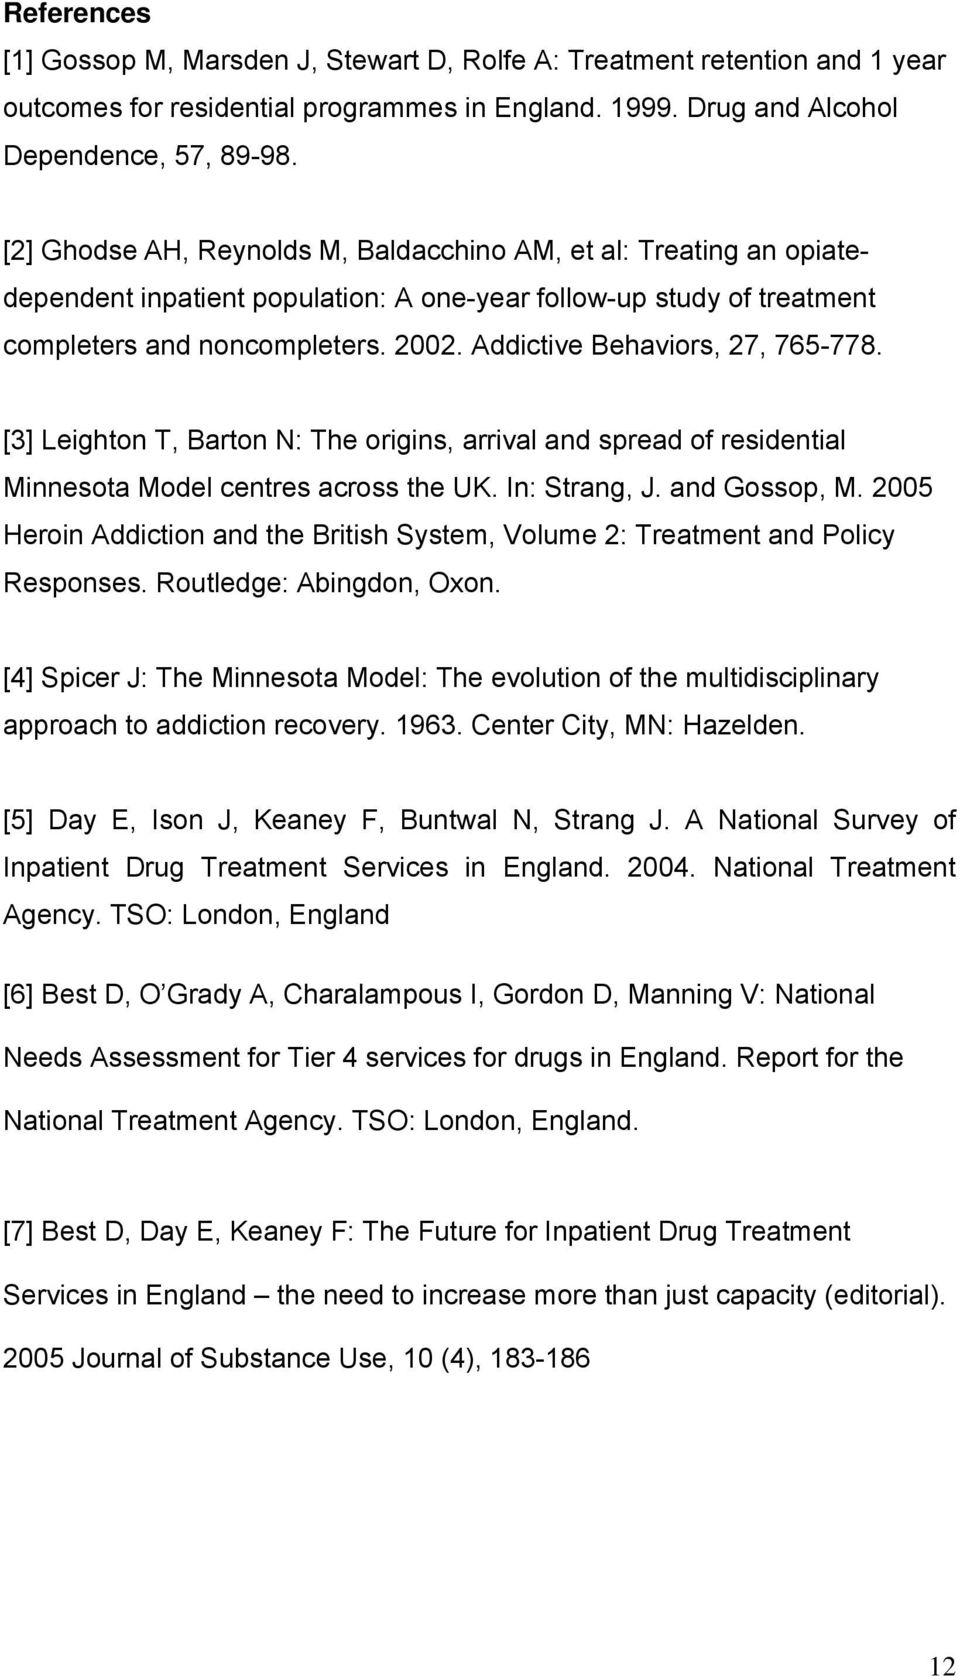 Addictive Behaviors, 27, 765-778. [3] Leighton T, Barton N: The origins, arrival and spread of residential Minnesota Model centres across the UK. In: Strang, J. and Gossop, M.